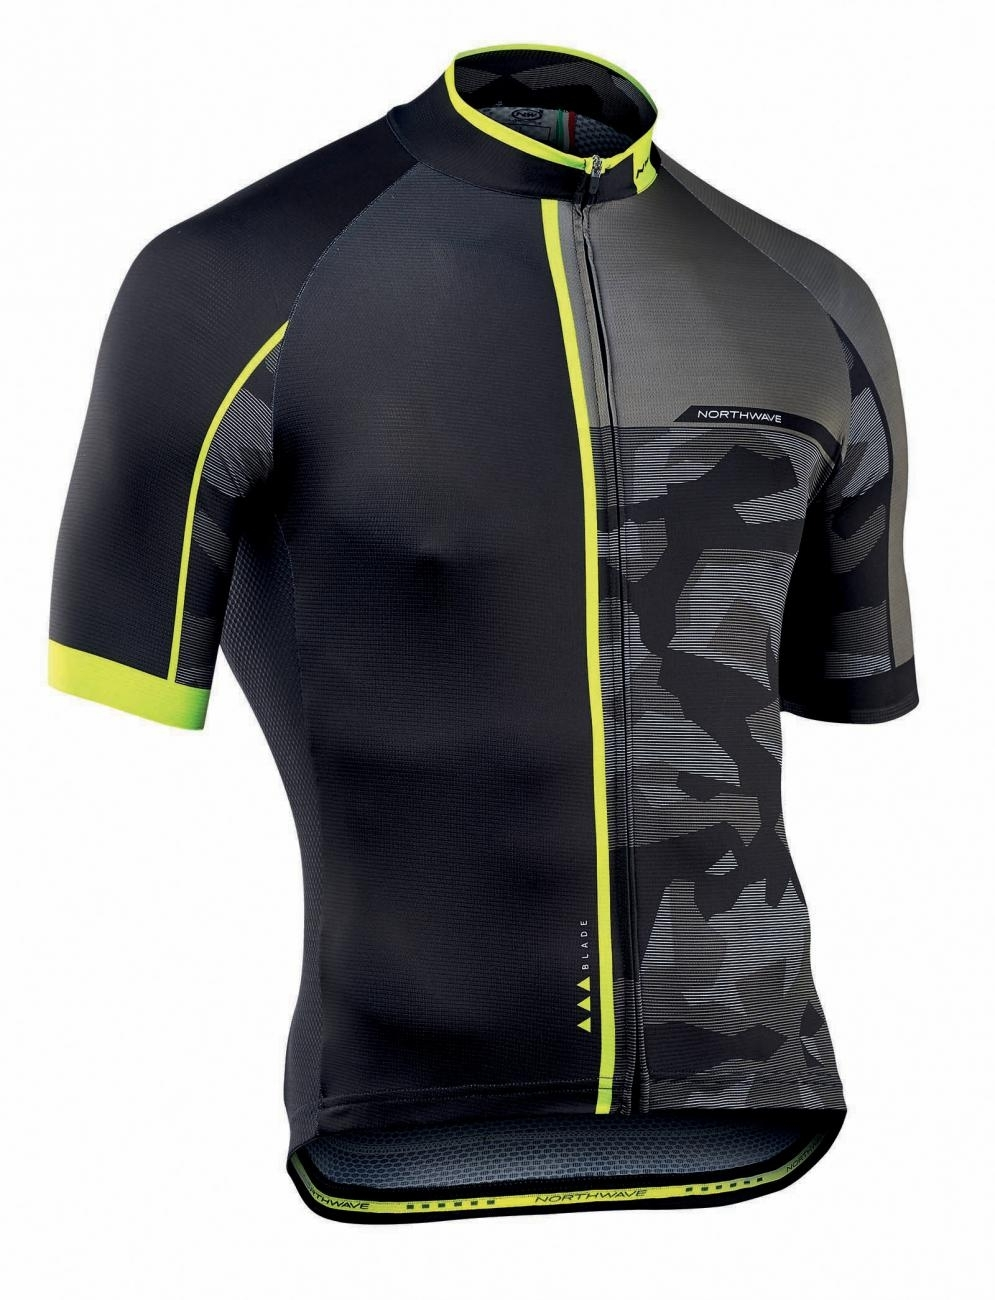 NORTHWAVE Man cycling jersey short sleeves BLADE2 grey/black camouflage